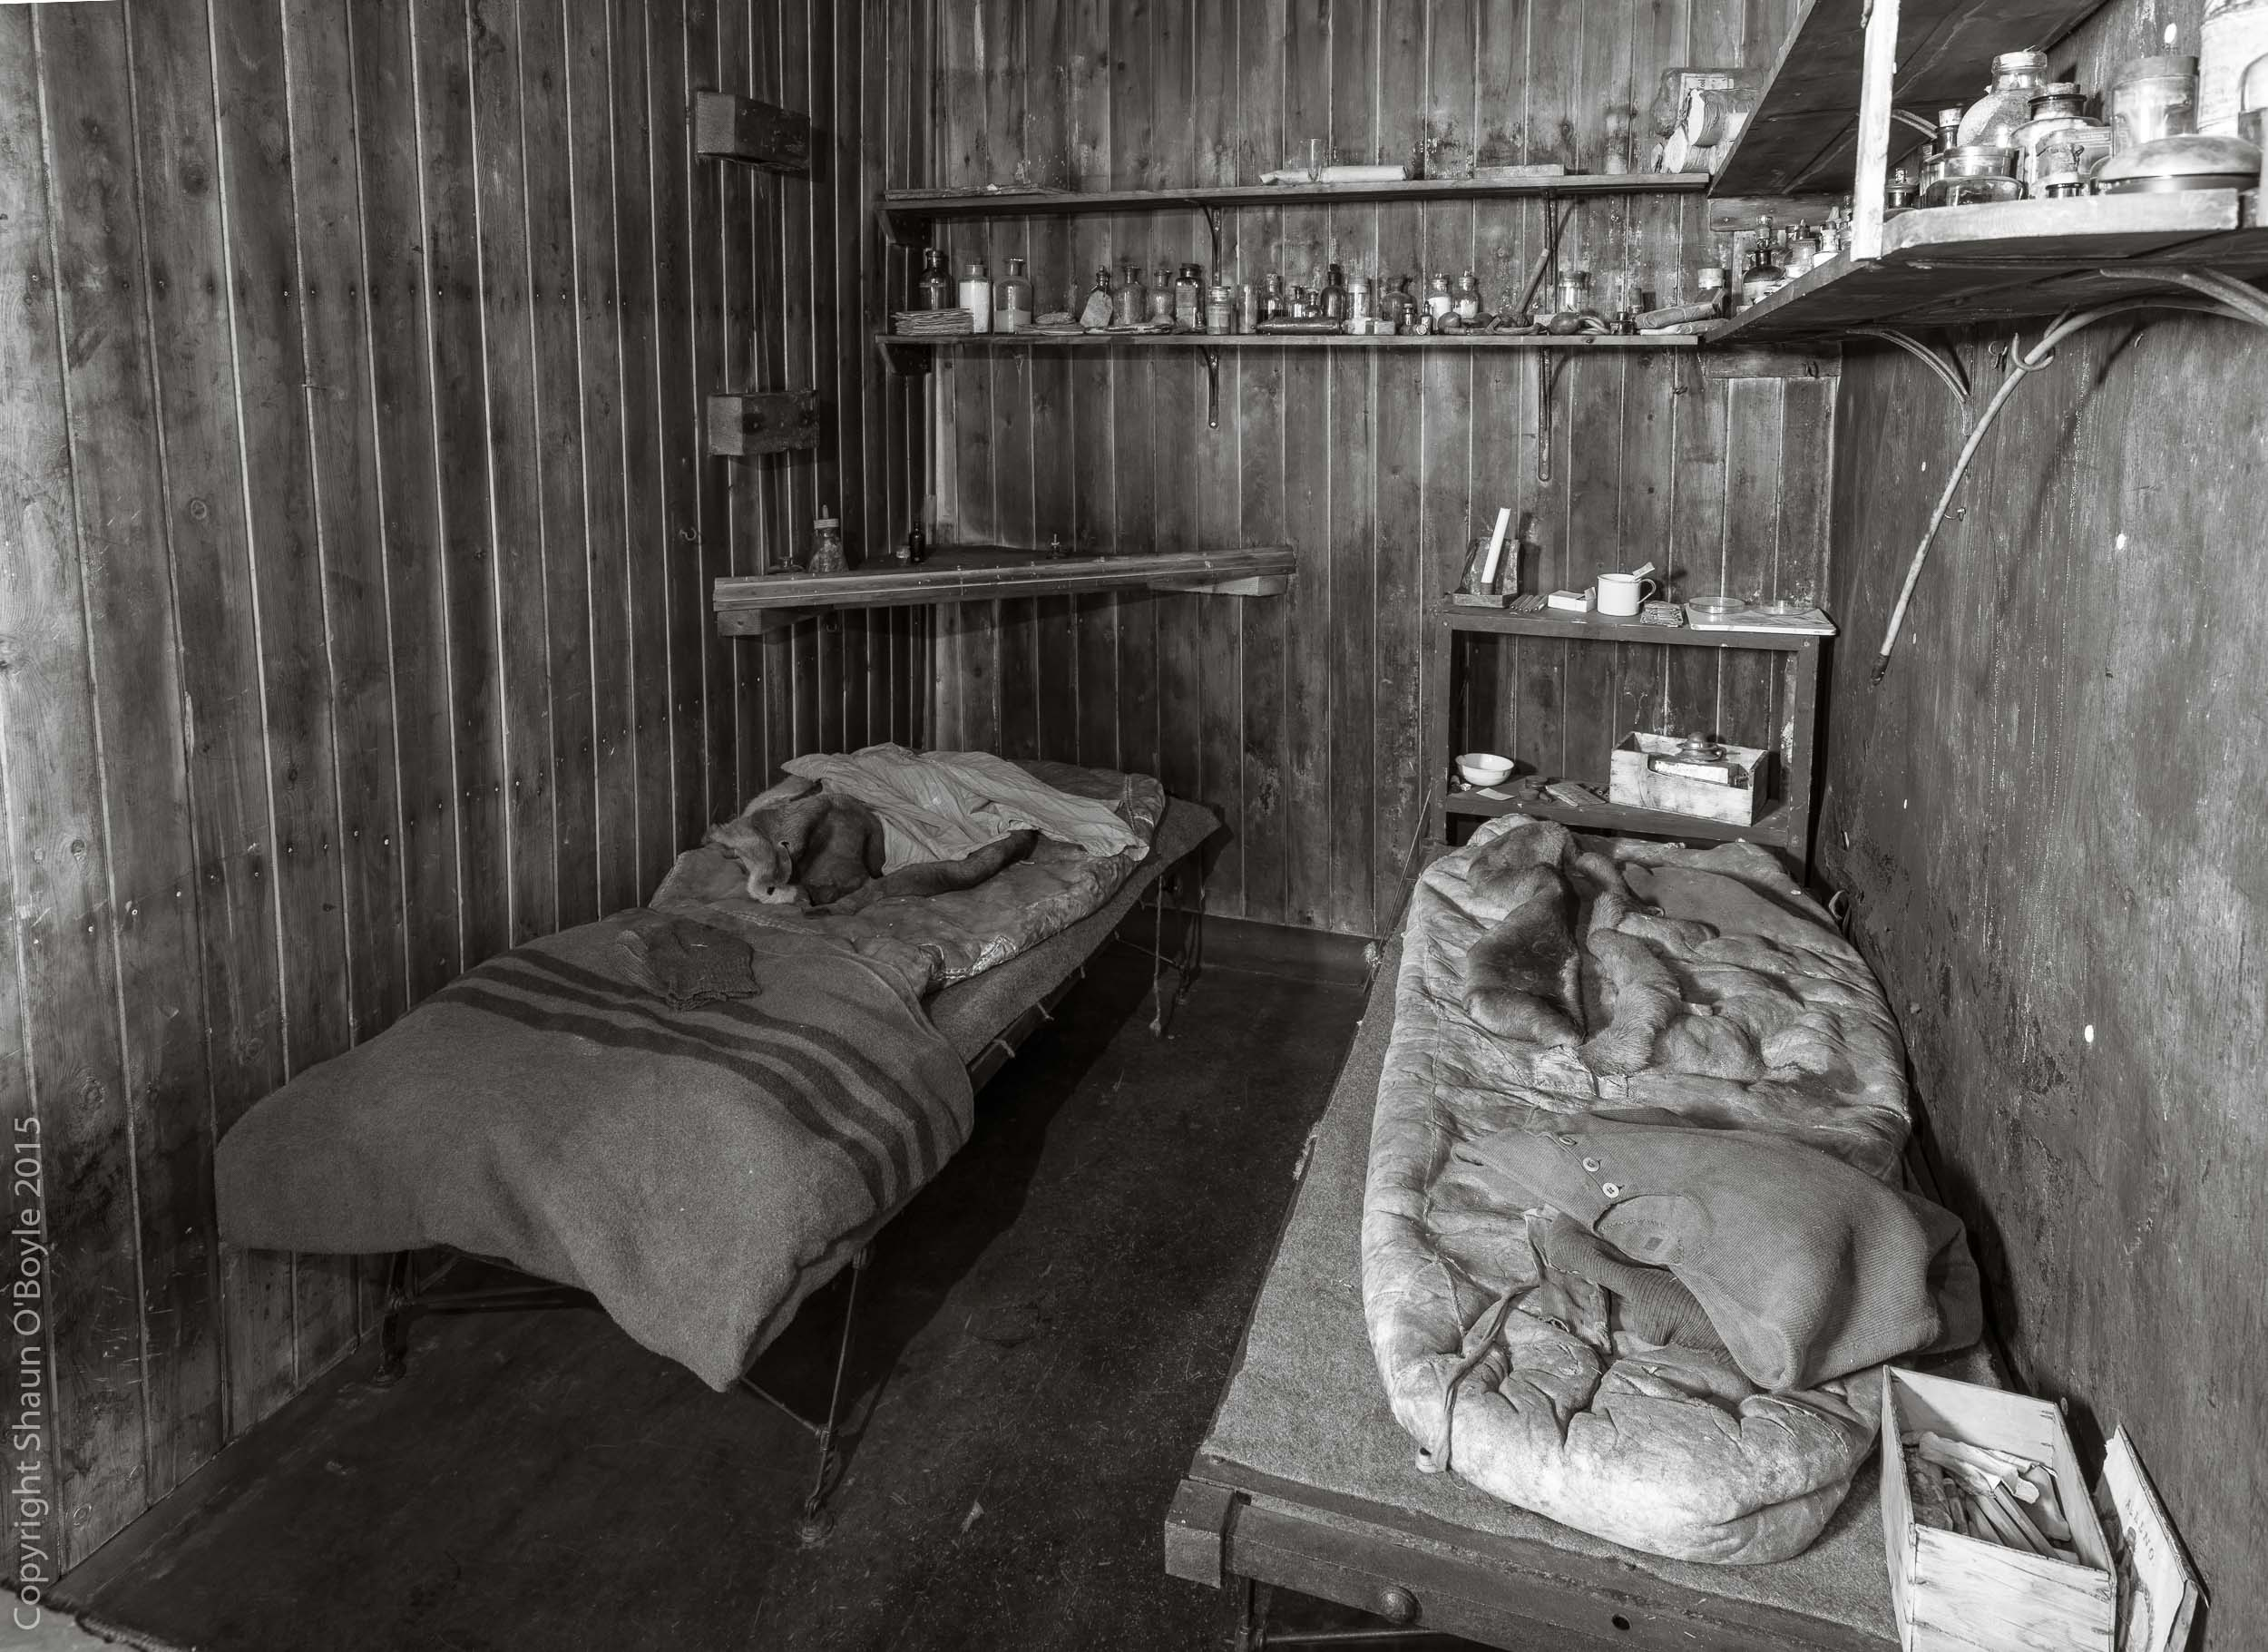 Evans and Wilson's cots